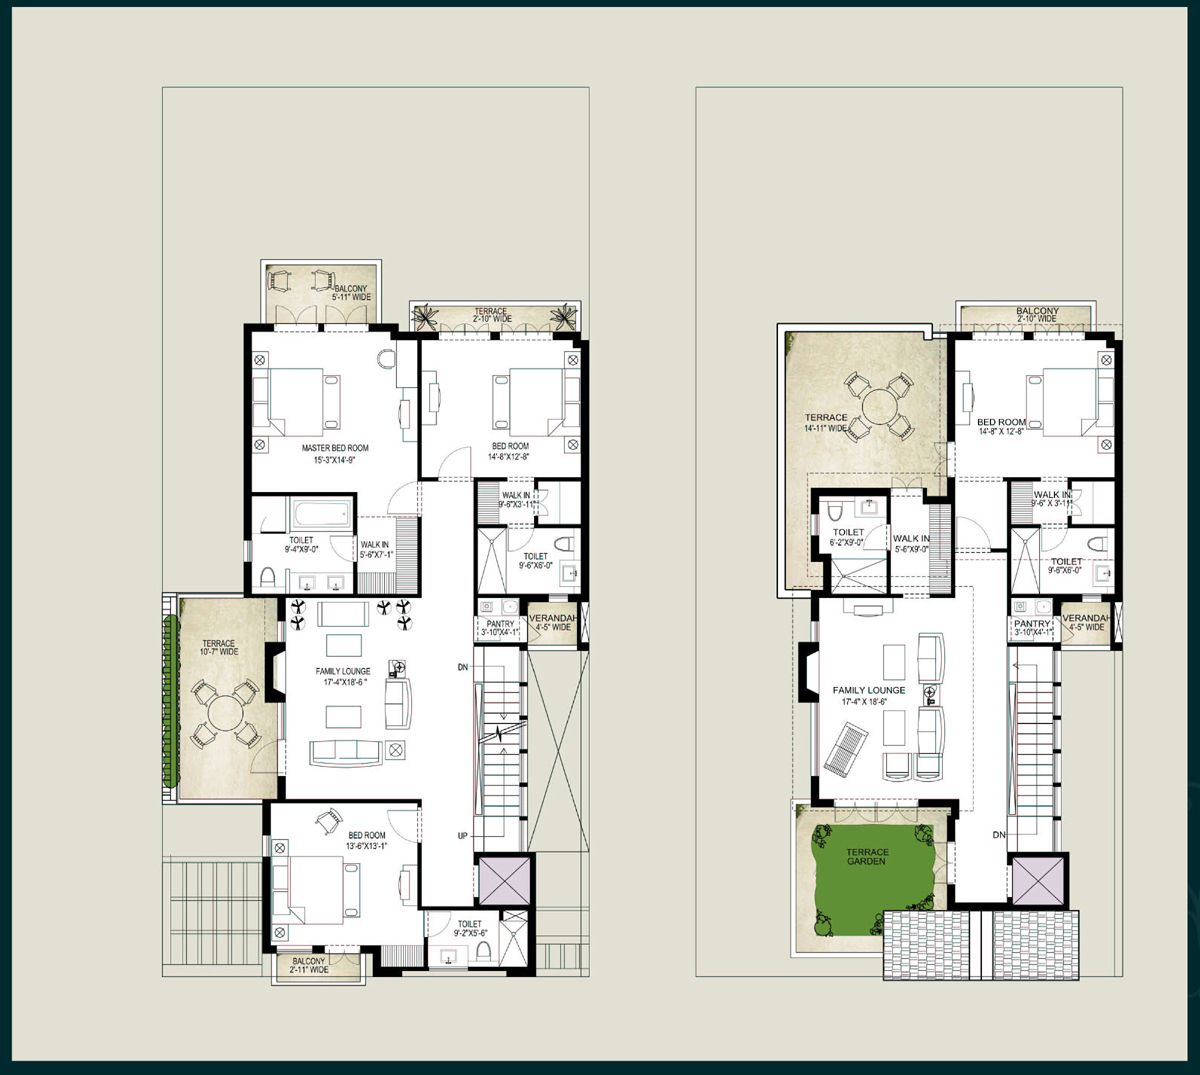 Unusual house designs floor plans house design plans for A v jennings home designs